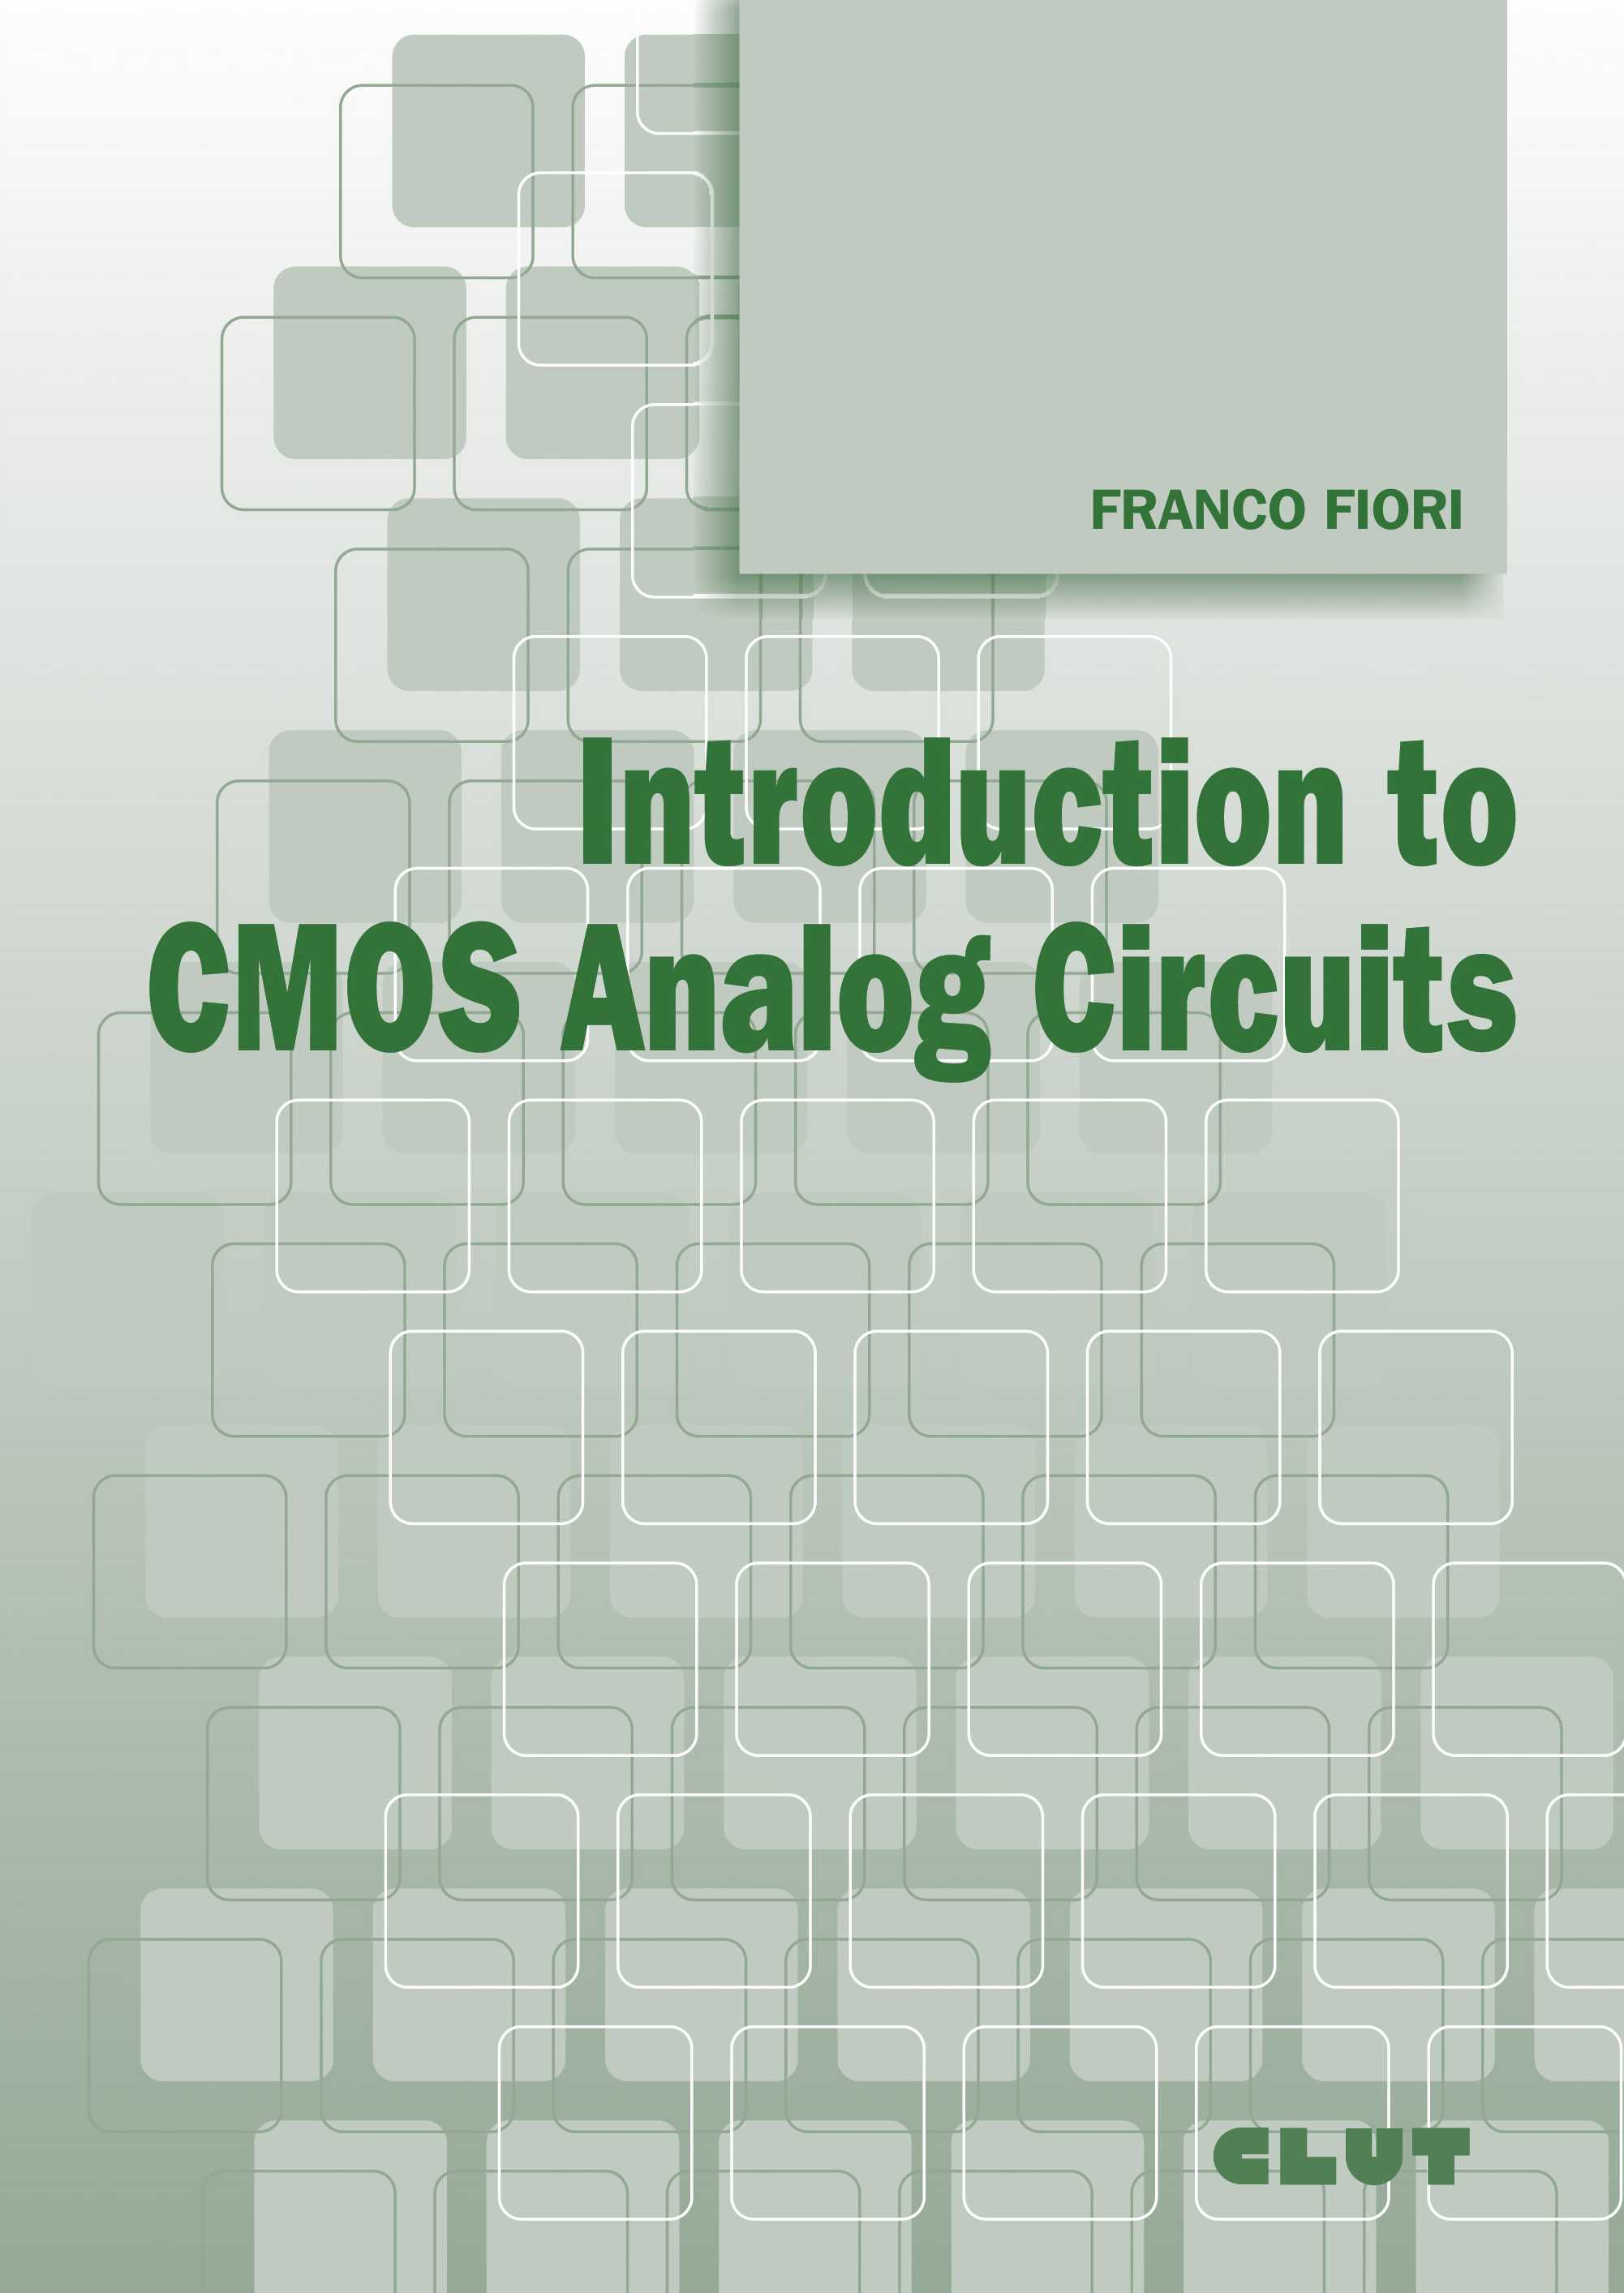 INTRODUCTION TO CMOS ANALOG CIRCUITS